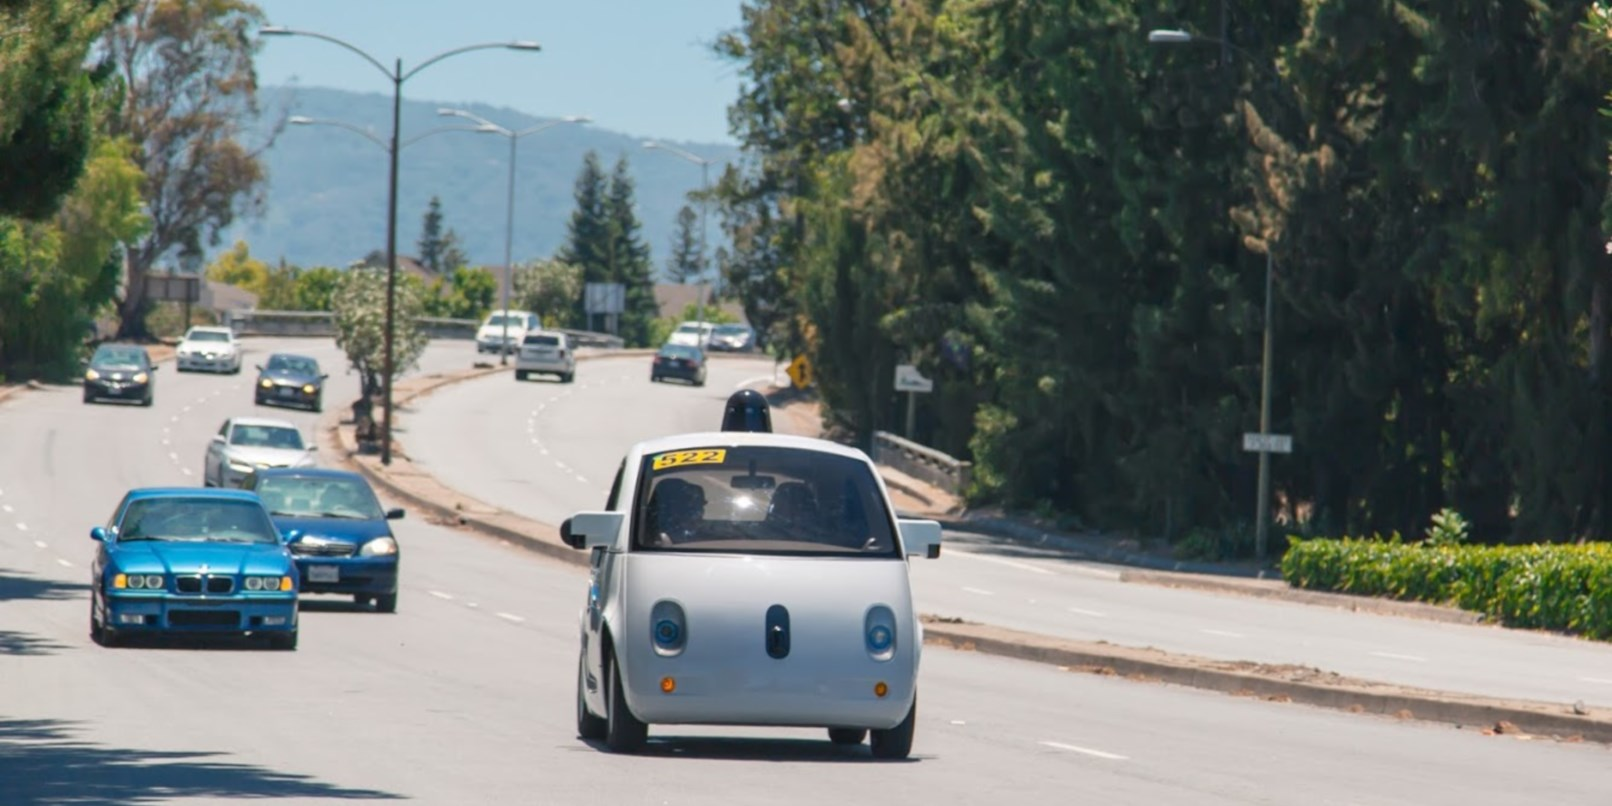 Google's testing new self-driving cars in California